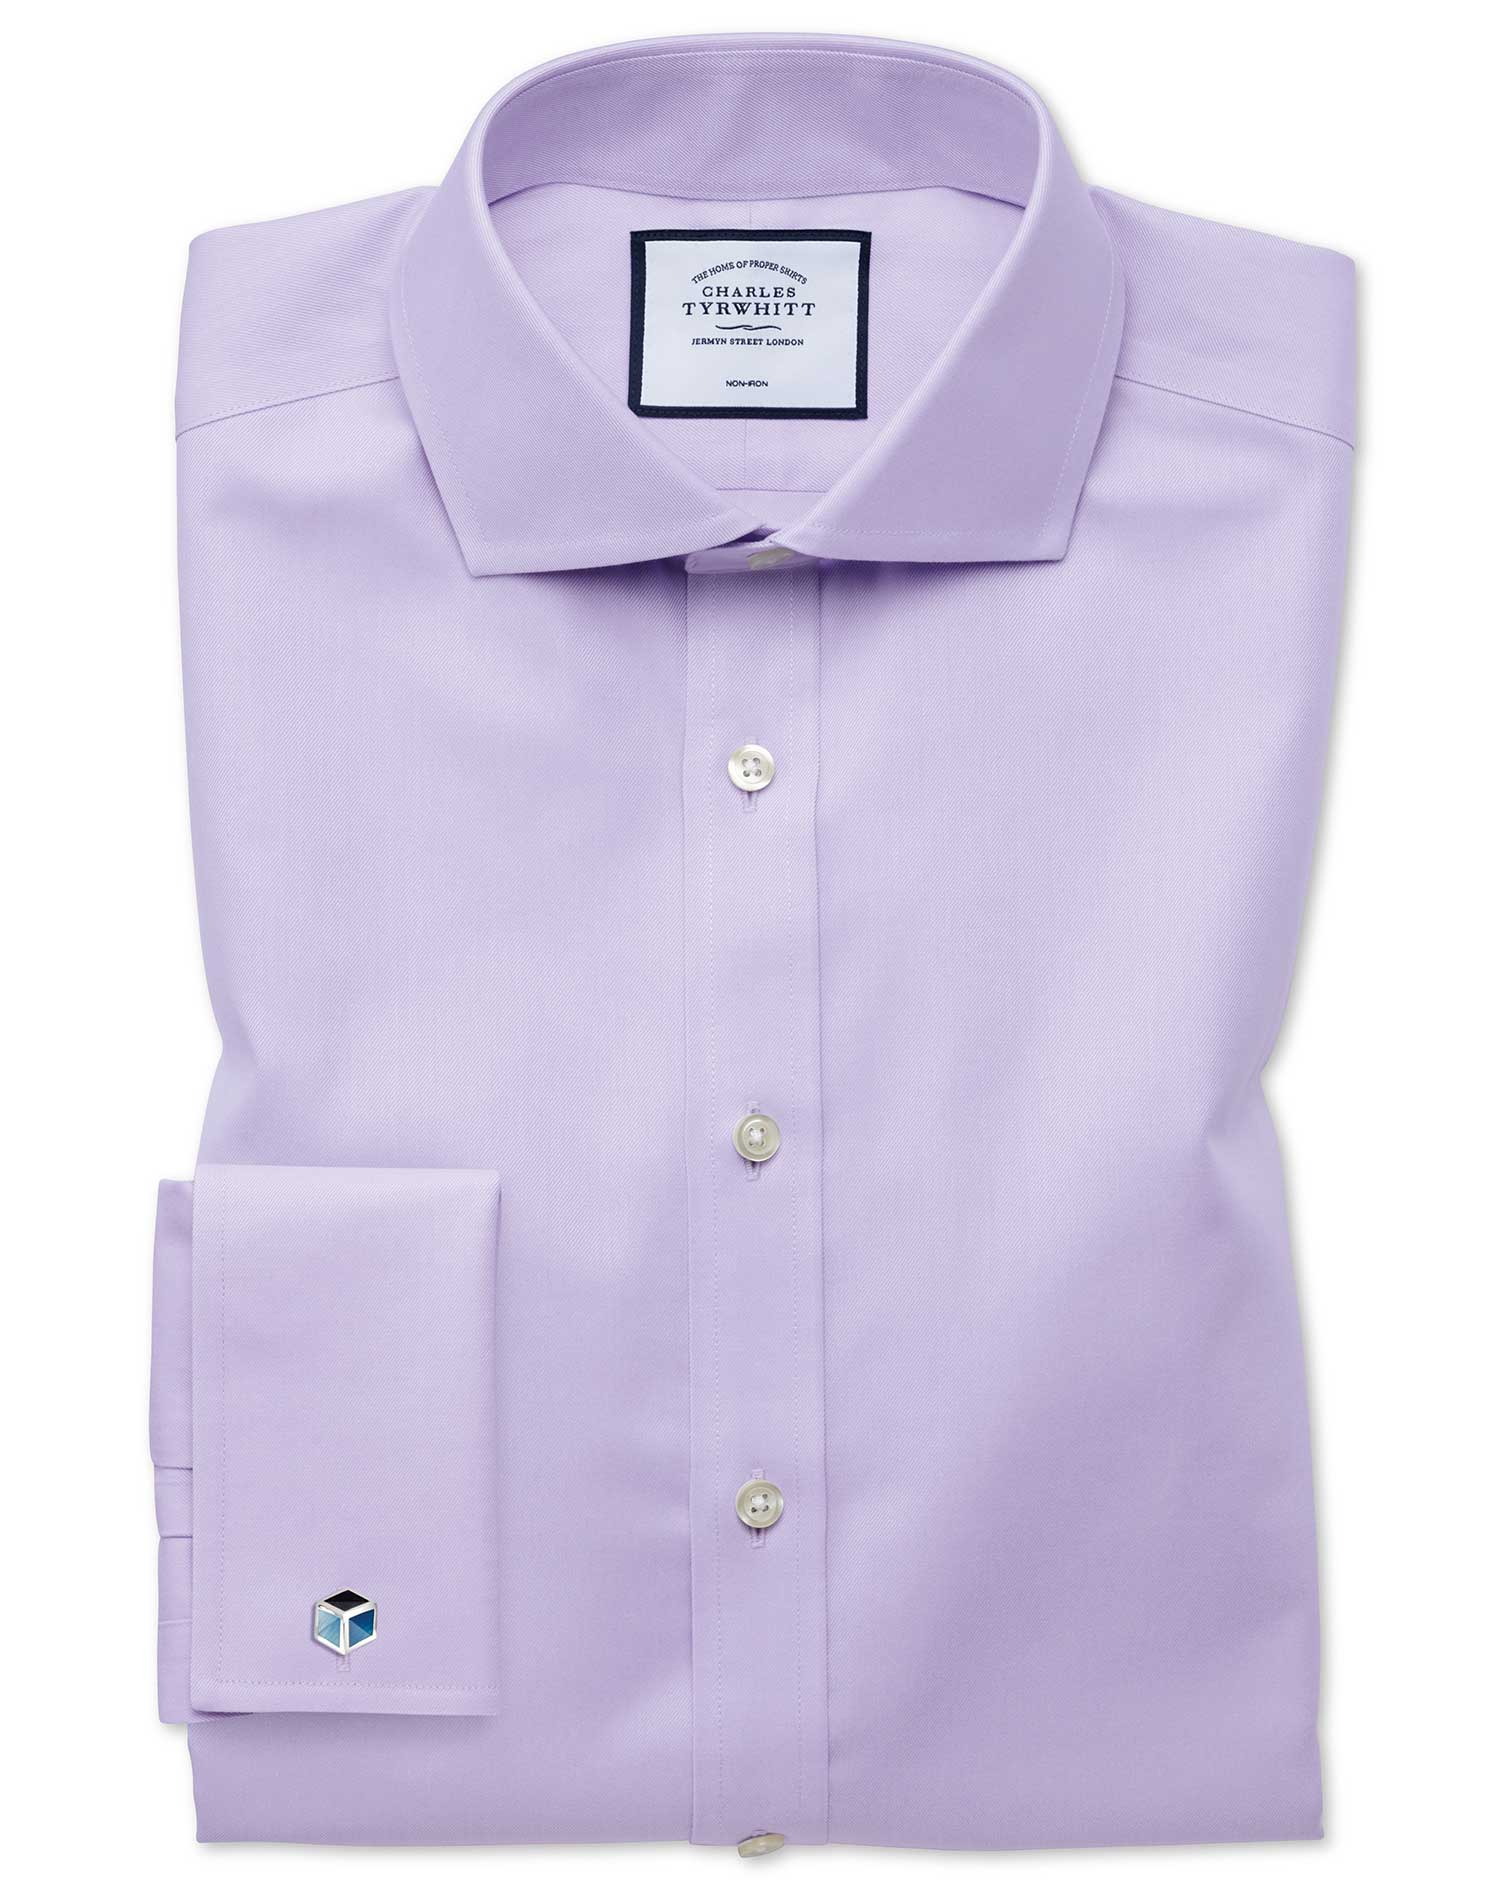 Extra Slim Fit Non-Iron Twill Lilac Cotton Formal Shirt Double Cuff Size 16.5/35 by Charles Tyrwhitt